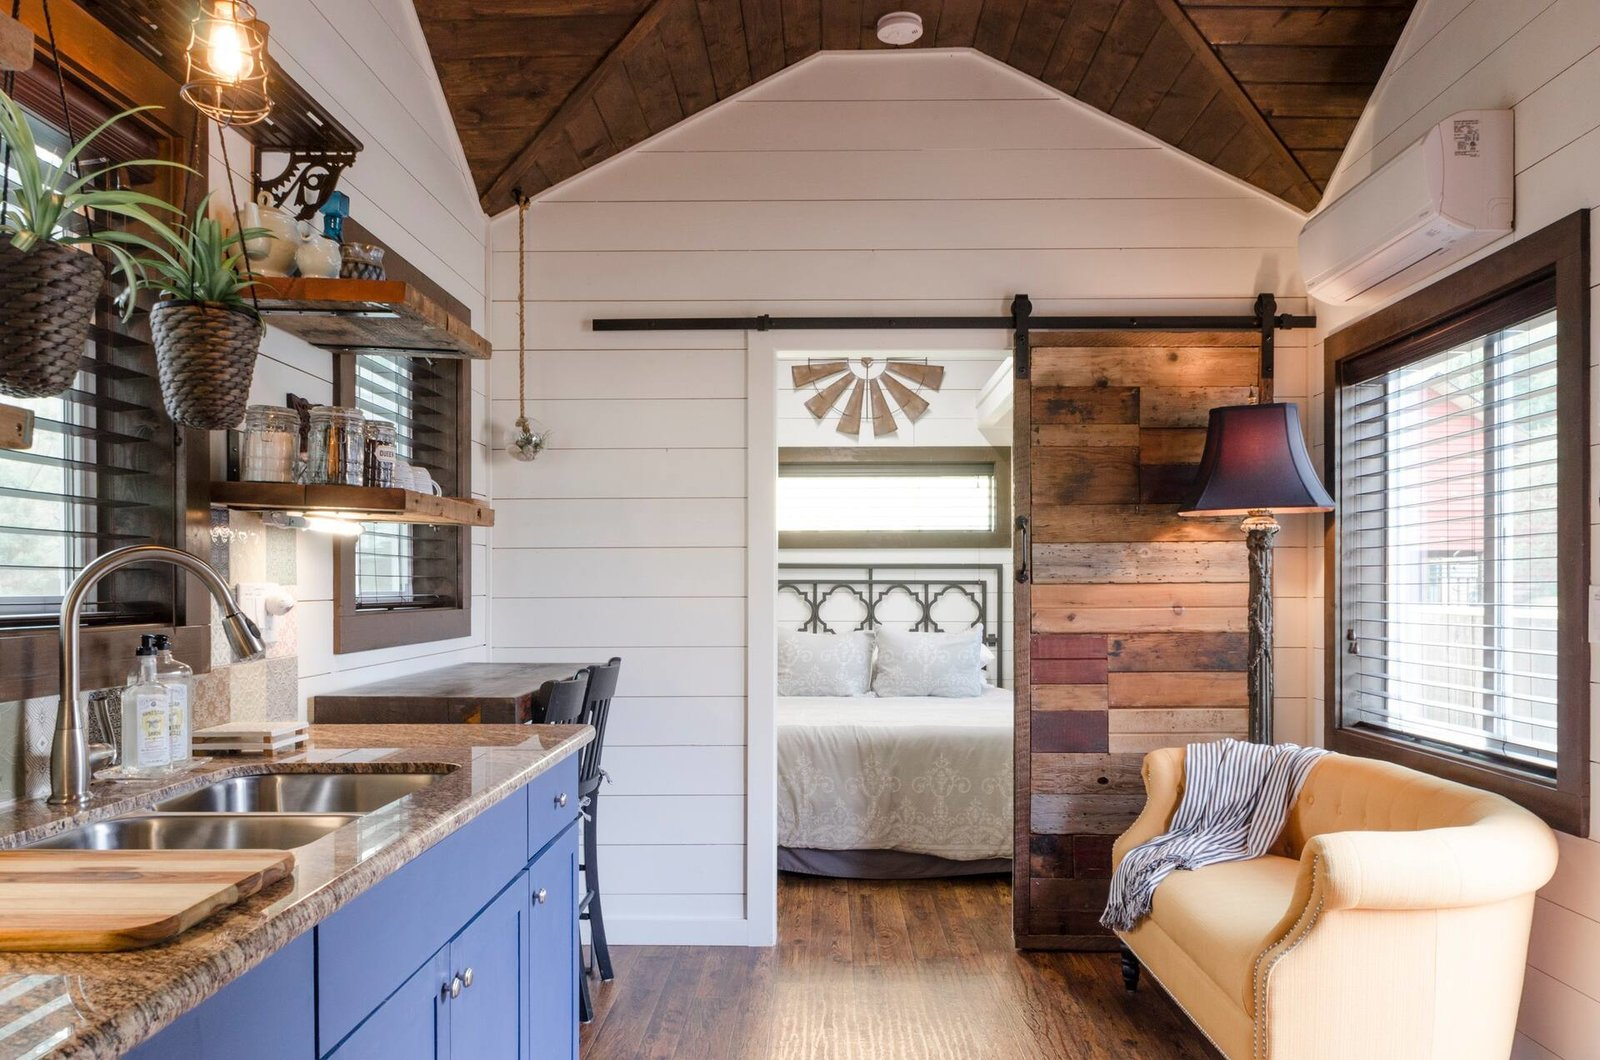 Just half a block away from Portland's boutique- and gallery-lined Alberta Arts District, this compact 300-square-foot abode with the rust cedar ceilings, shiplap walls, and stash of knick-knacks first welcomes visitors with a hand-painted bed post. The hosts built the home themselves, so look for thoughtful details like an artful petrified sink, Portland-made tiles, and the sliding barn door, shelves, and tables fashioned from salvaged wood. After dinner, relax at the fire pit table in the front courtyard.  Photo 2 of 18 in 17 Dreamy and Rentable Retreats for a Pacific Northwest Escape